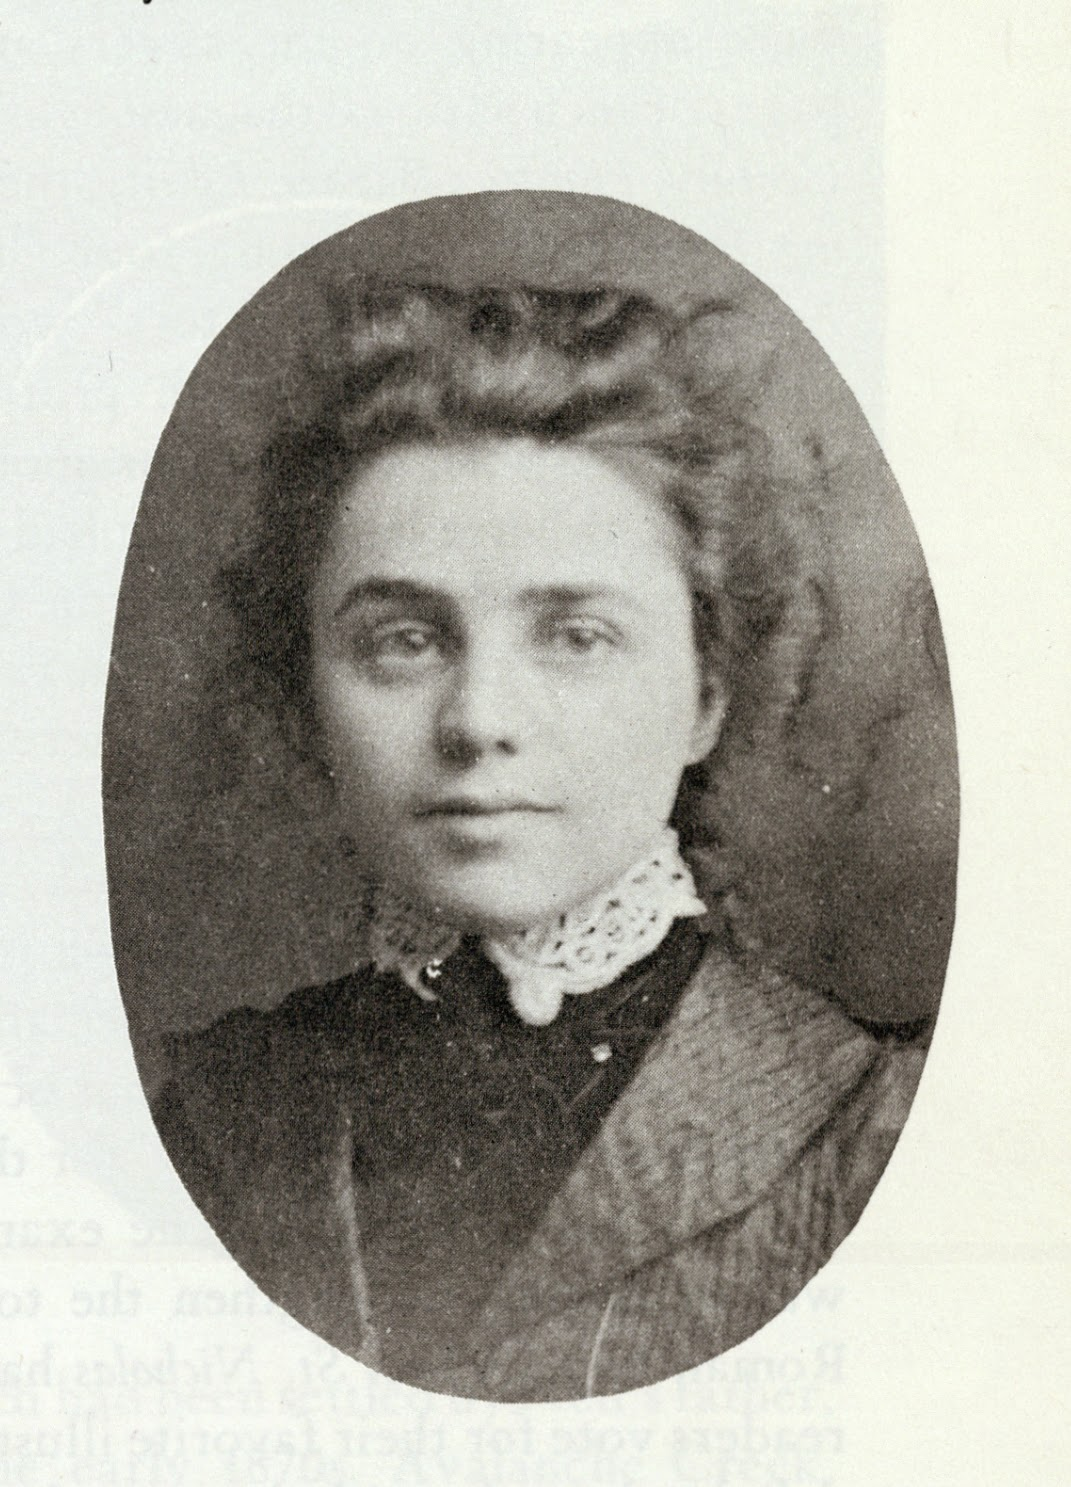 Fanny Cory in her youth